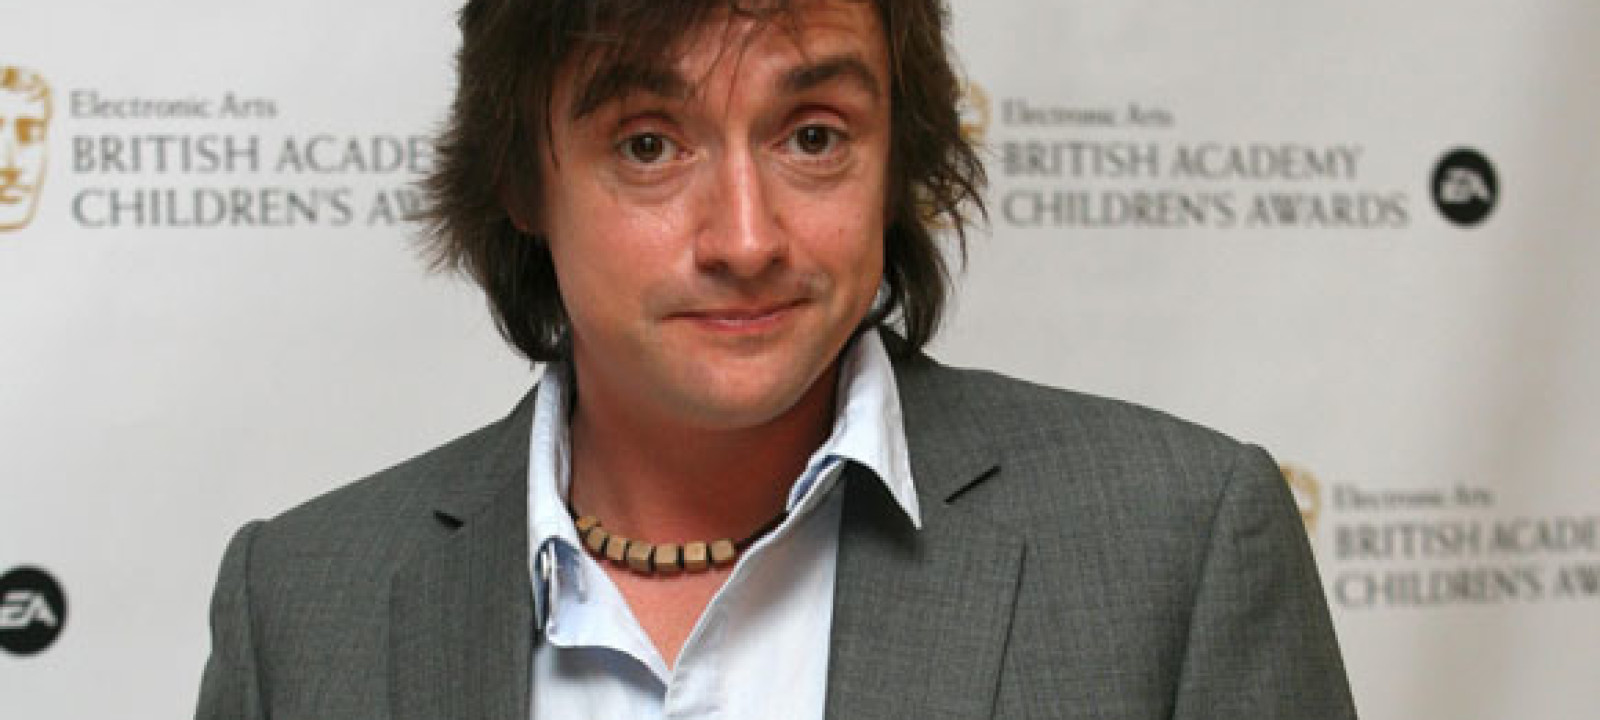 580x400_richardhammond